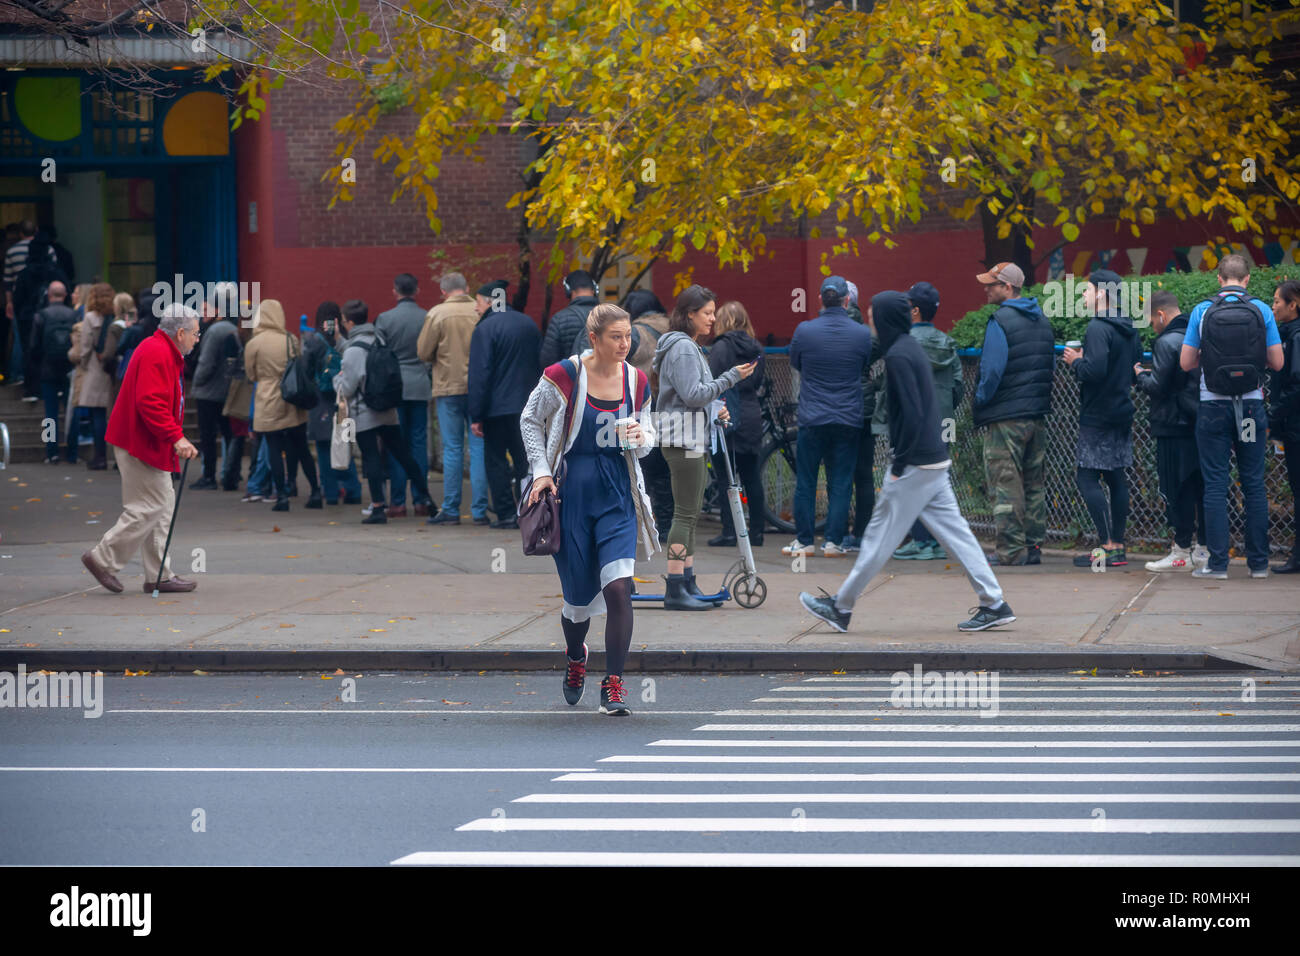 New York, USA. 6th November, 2018. Hundreds of voters wait in line to enter the PS33 polling station in the Chelsea neighborhood of New York on Election Day, Tuesday, November 6, 2018.  Credit: Richard Levine/Alamy Live News Stock Photo